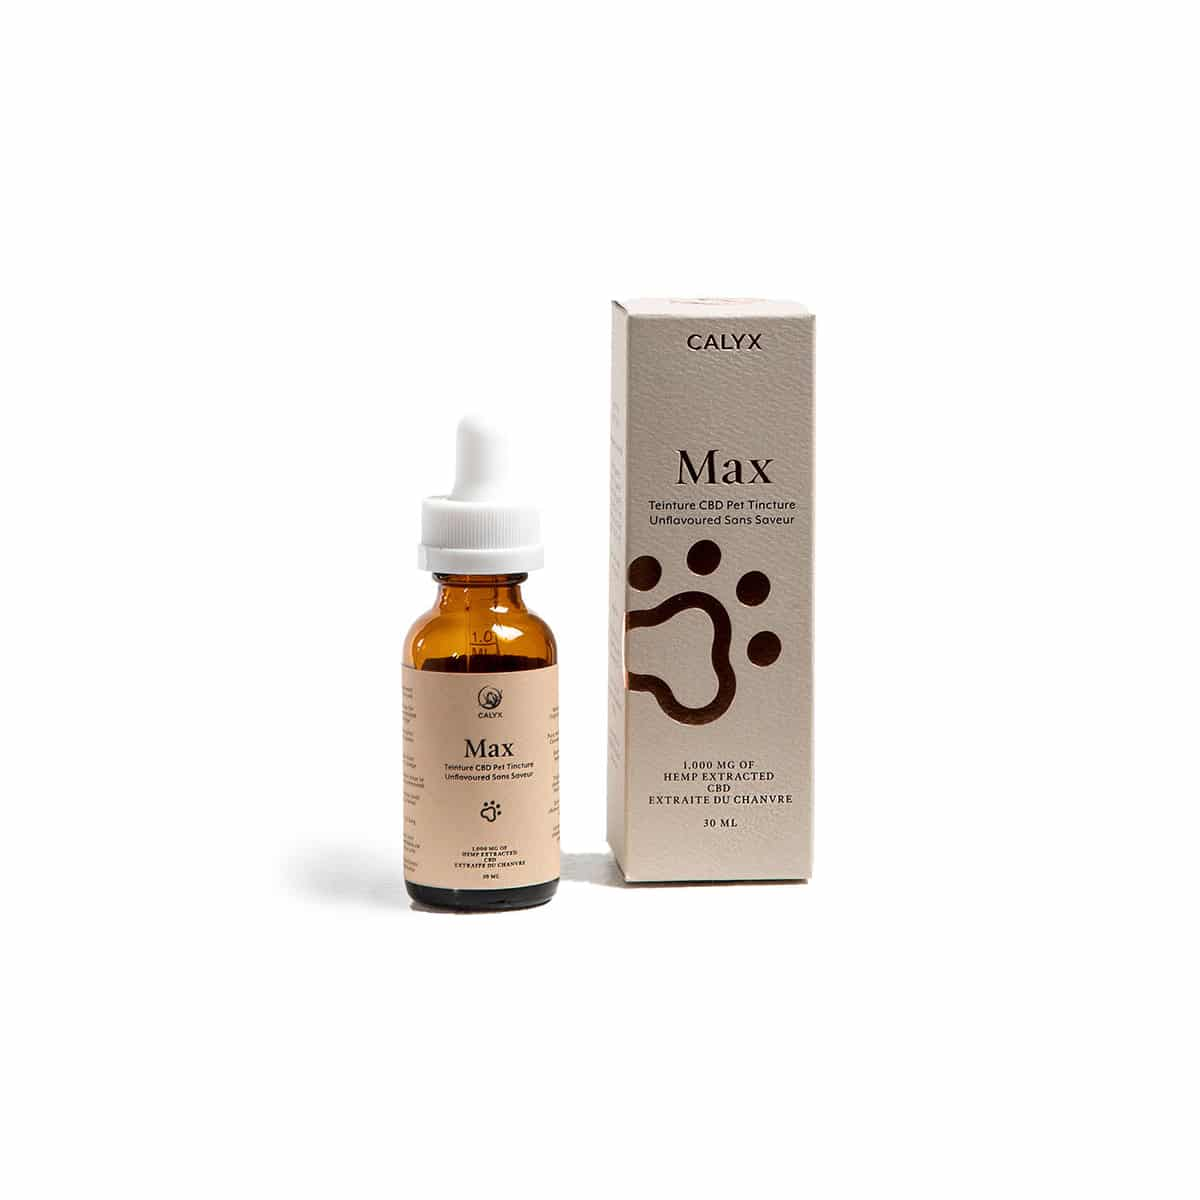 Box and Bottle of Max Pet Oil